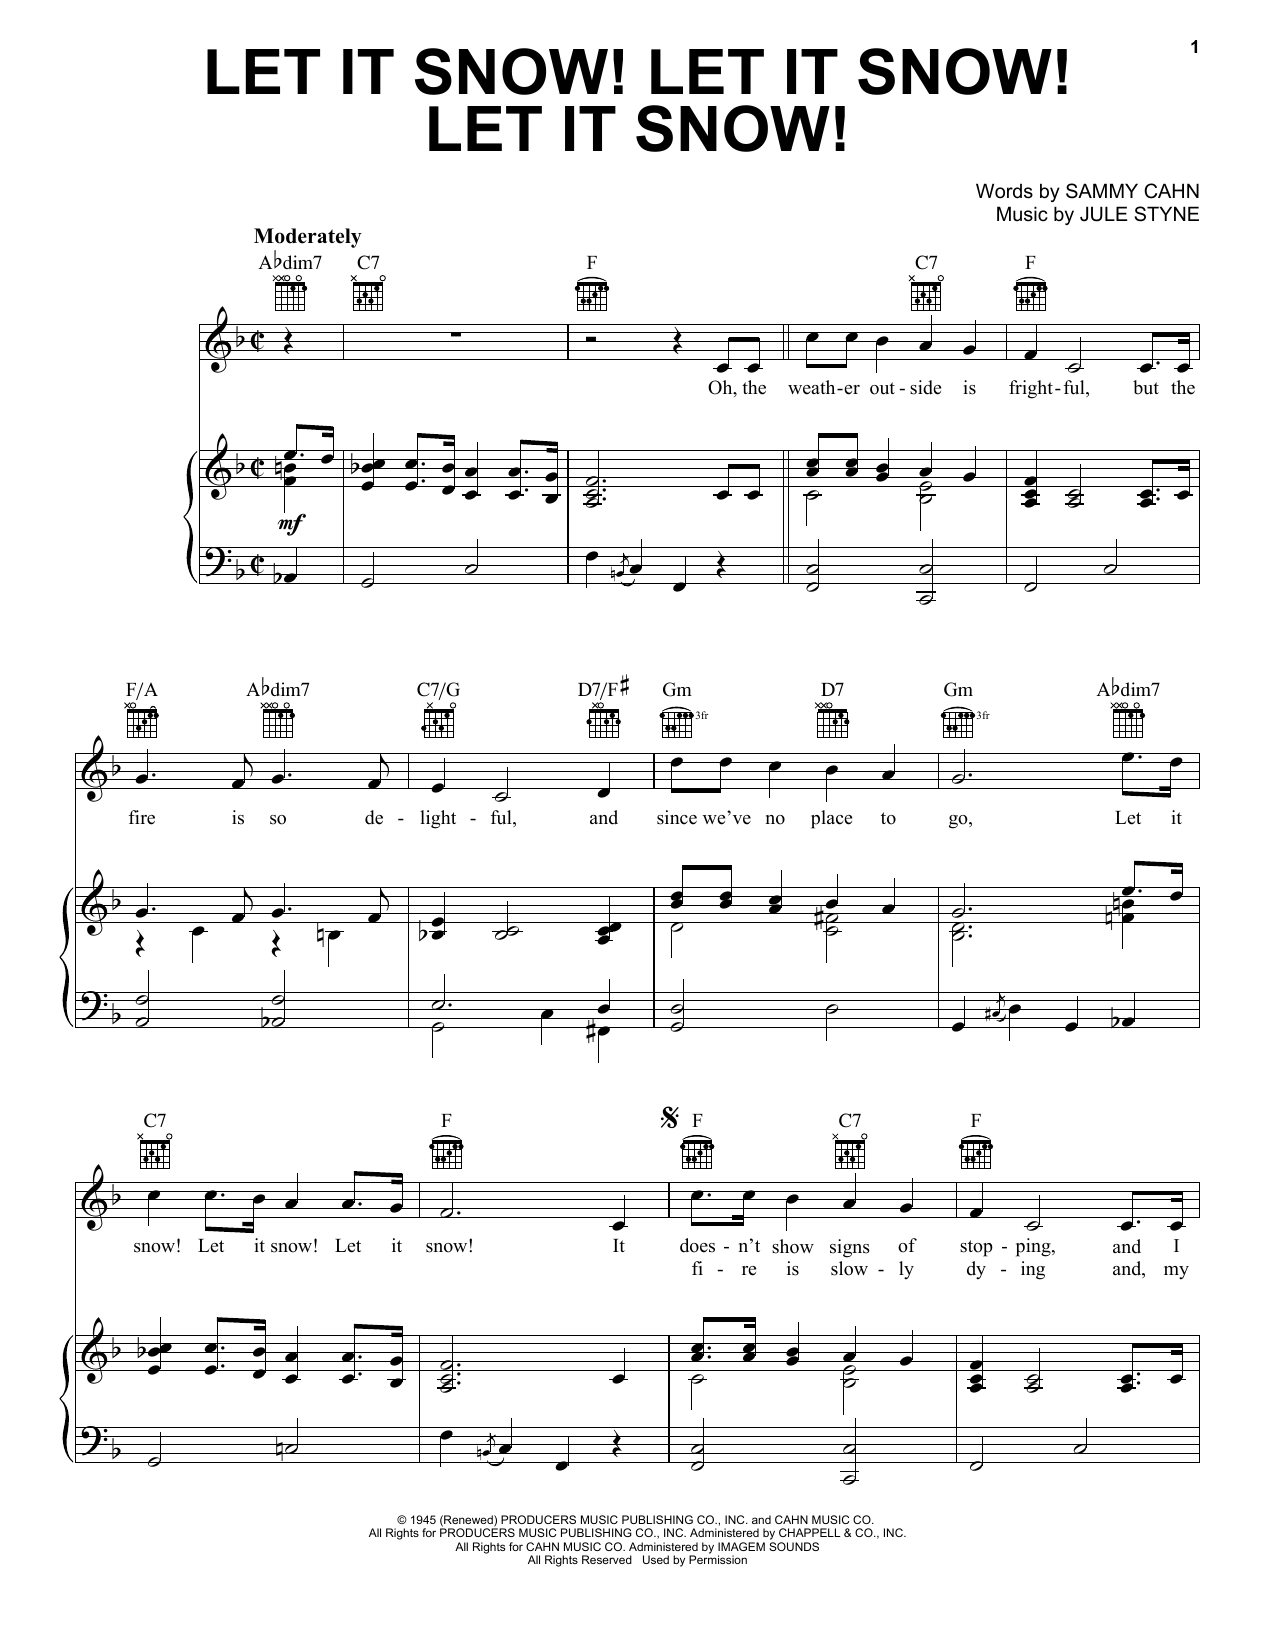 Sammy Cahn Let It Snow! Let It Snow! Let It Snow! sheet music notes and chords - download printable PDF.